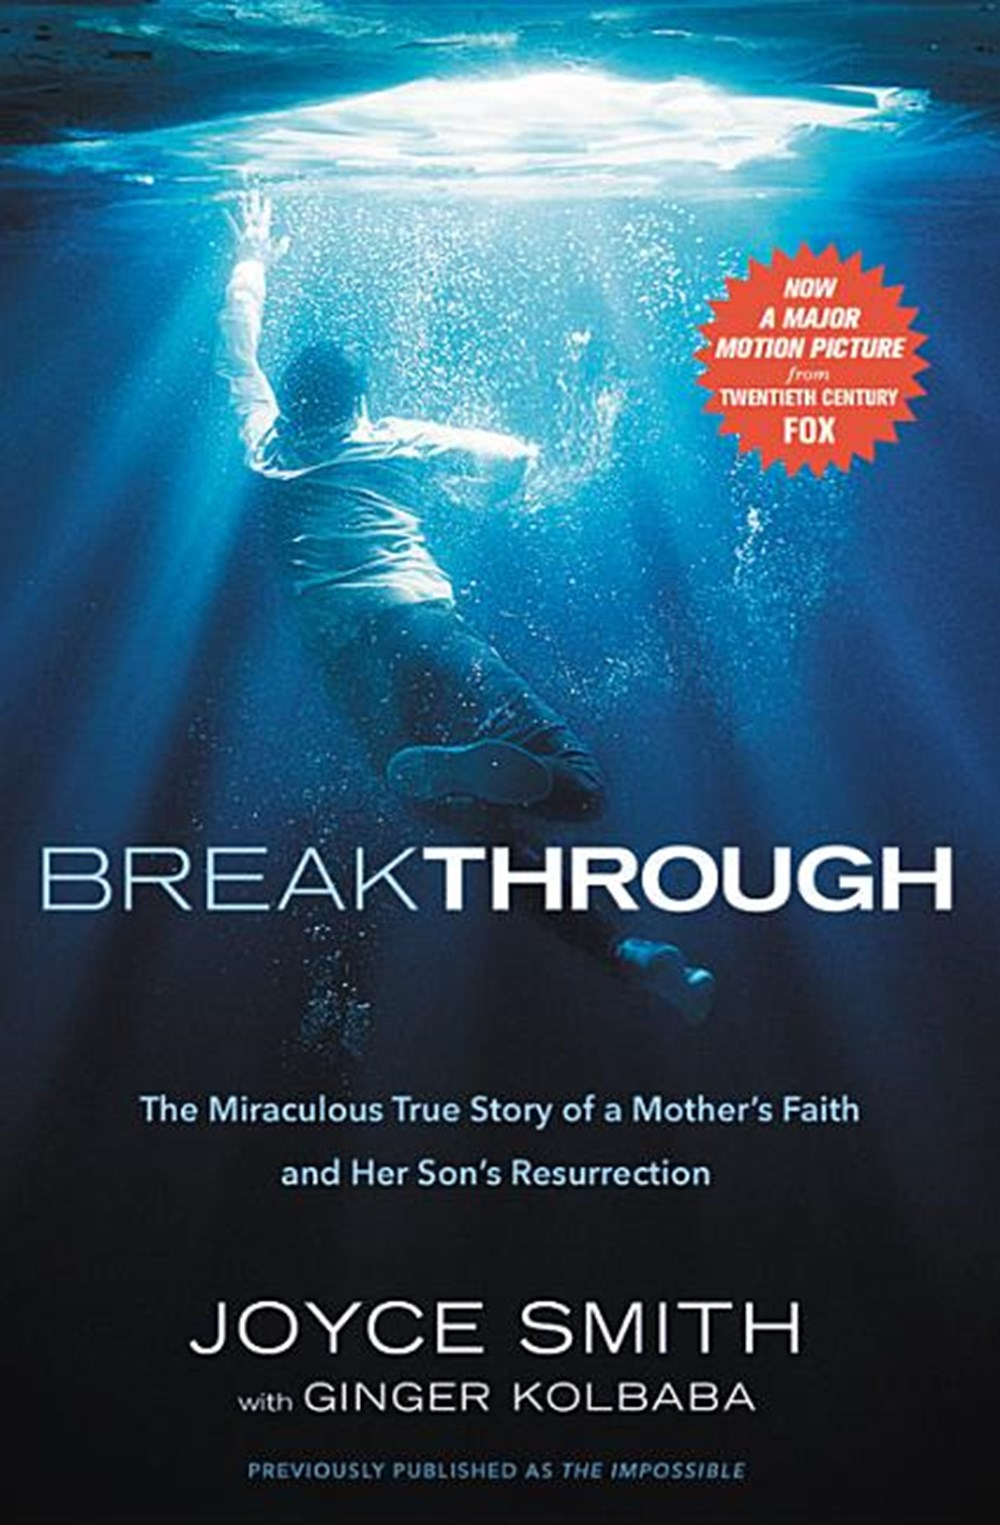 Breakthrough The Miraculous True Story of a Mother's Faith and Her Child's Resurrection